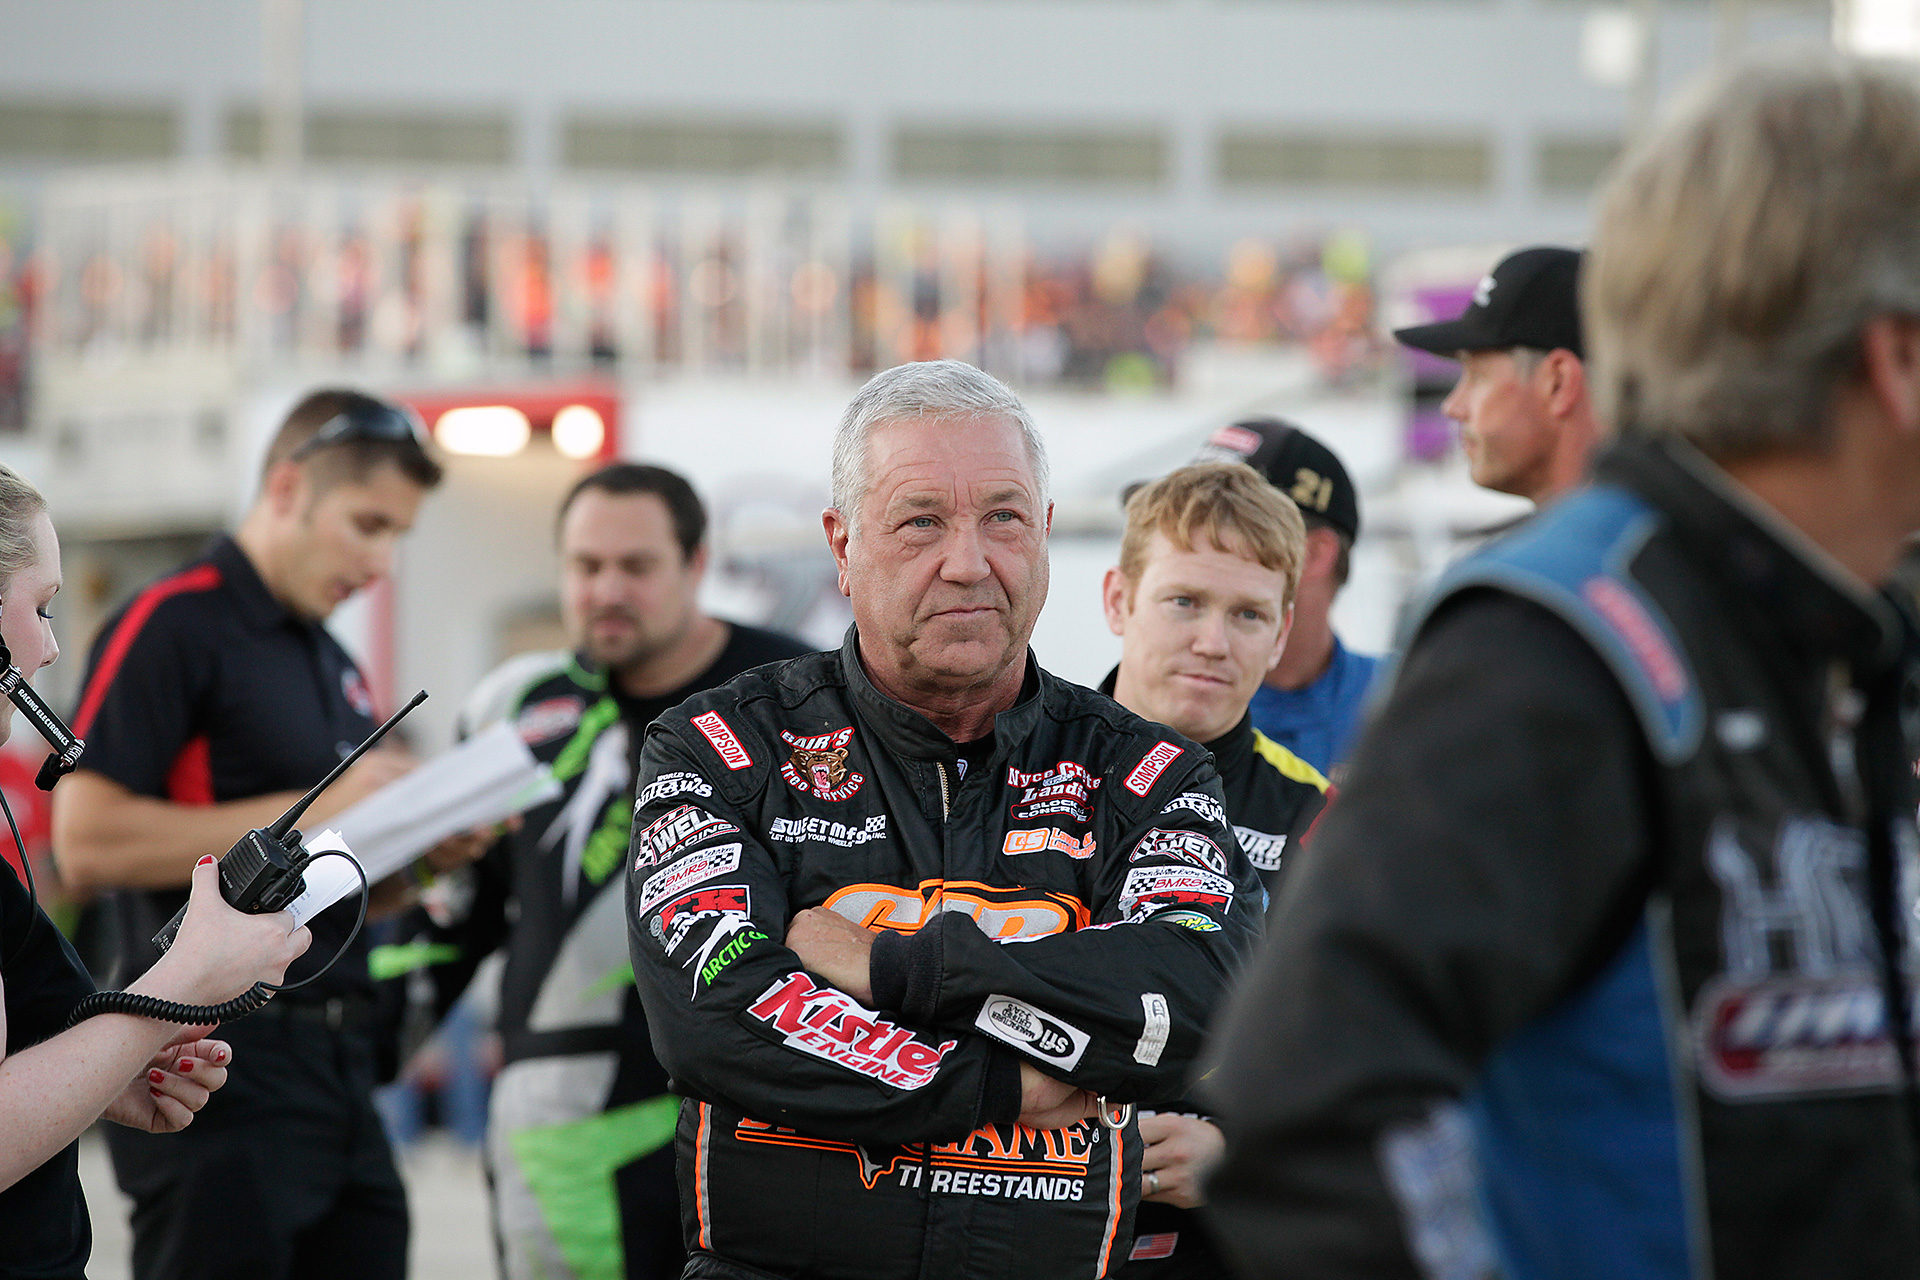 Sammy Swindell cues up for driver introductions at The 2016 Kings Royal. Swindell came away with a 12th place finish at The 33rd Annual Kings Royal after winning his heat earlier in the day. ( Jeffrey Turford / TDP )